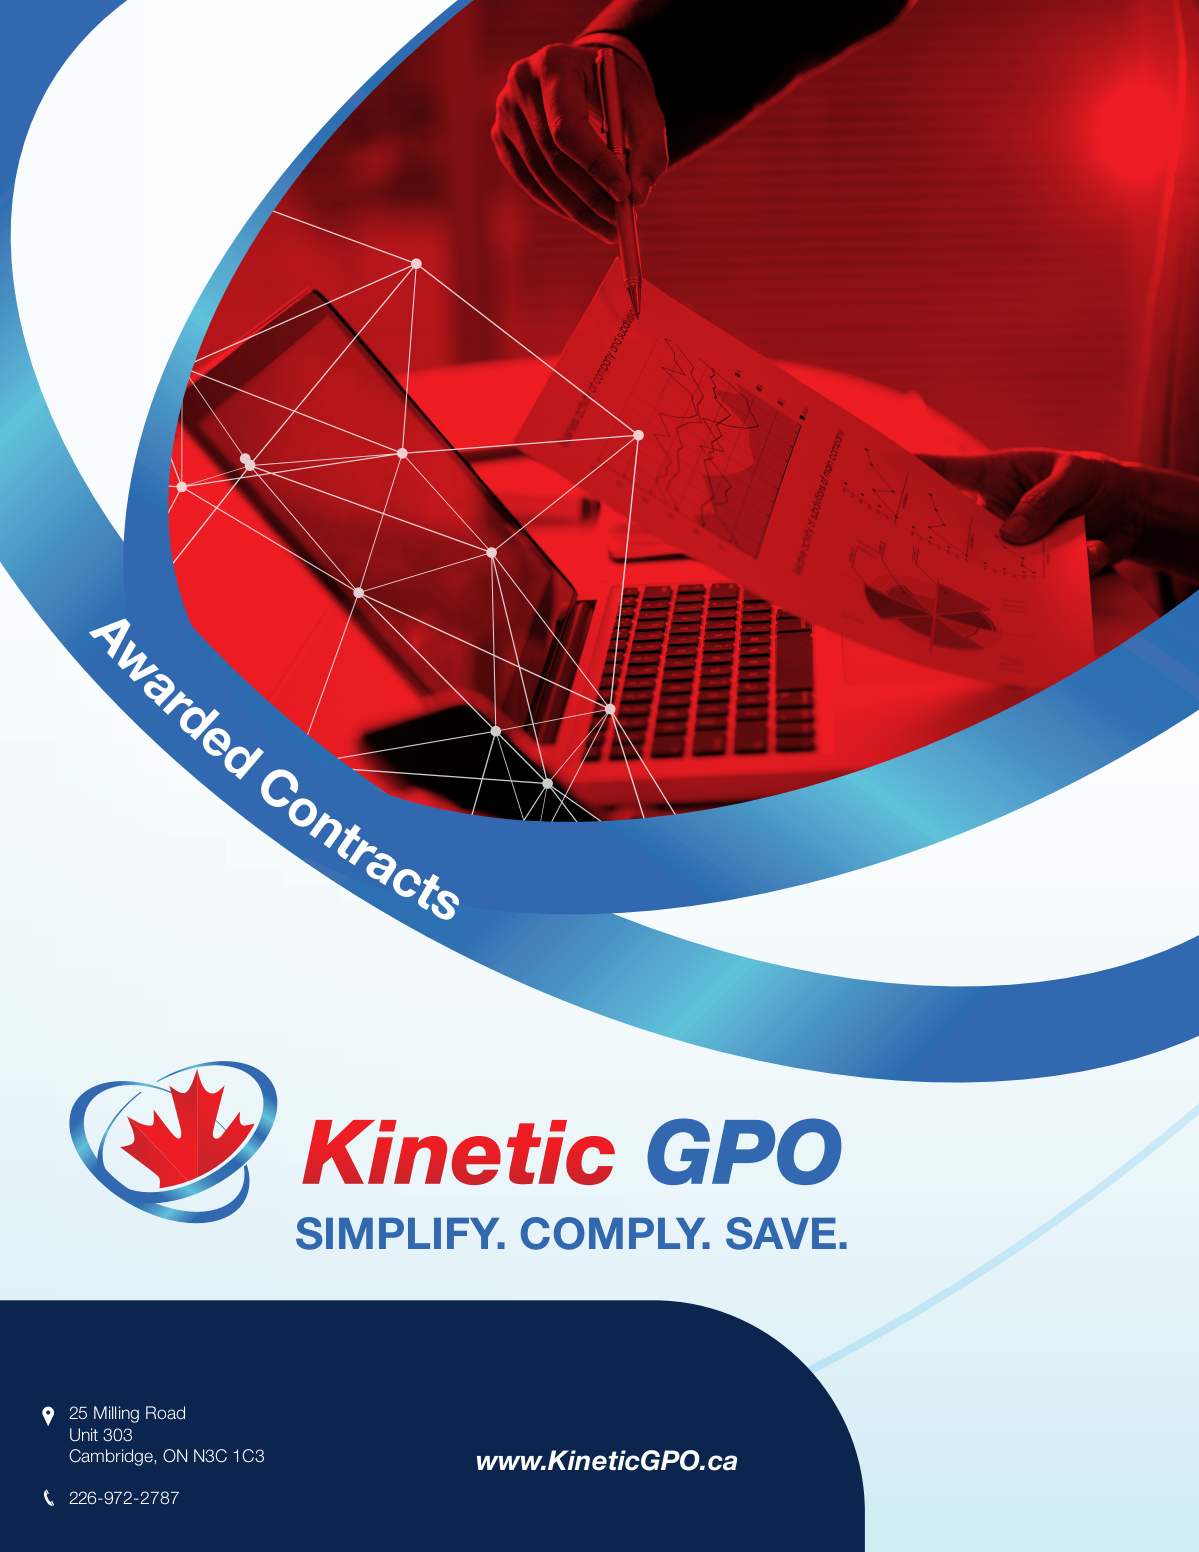 Booklet - Marketing Piece For Kinetic GPO